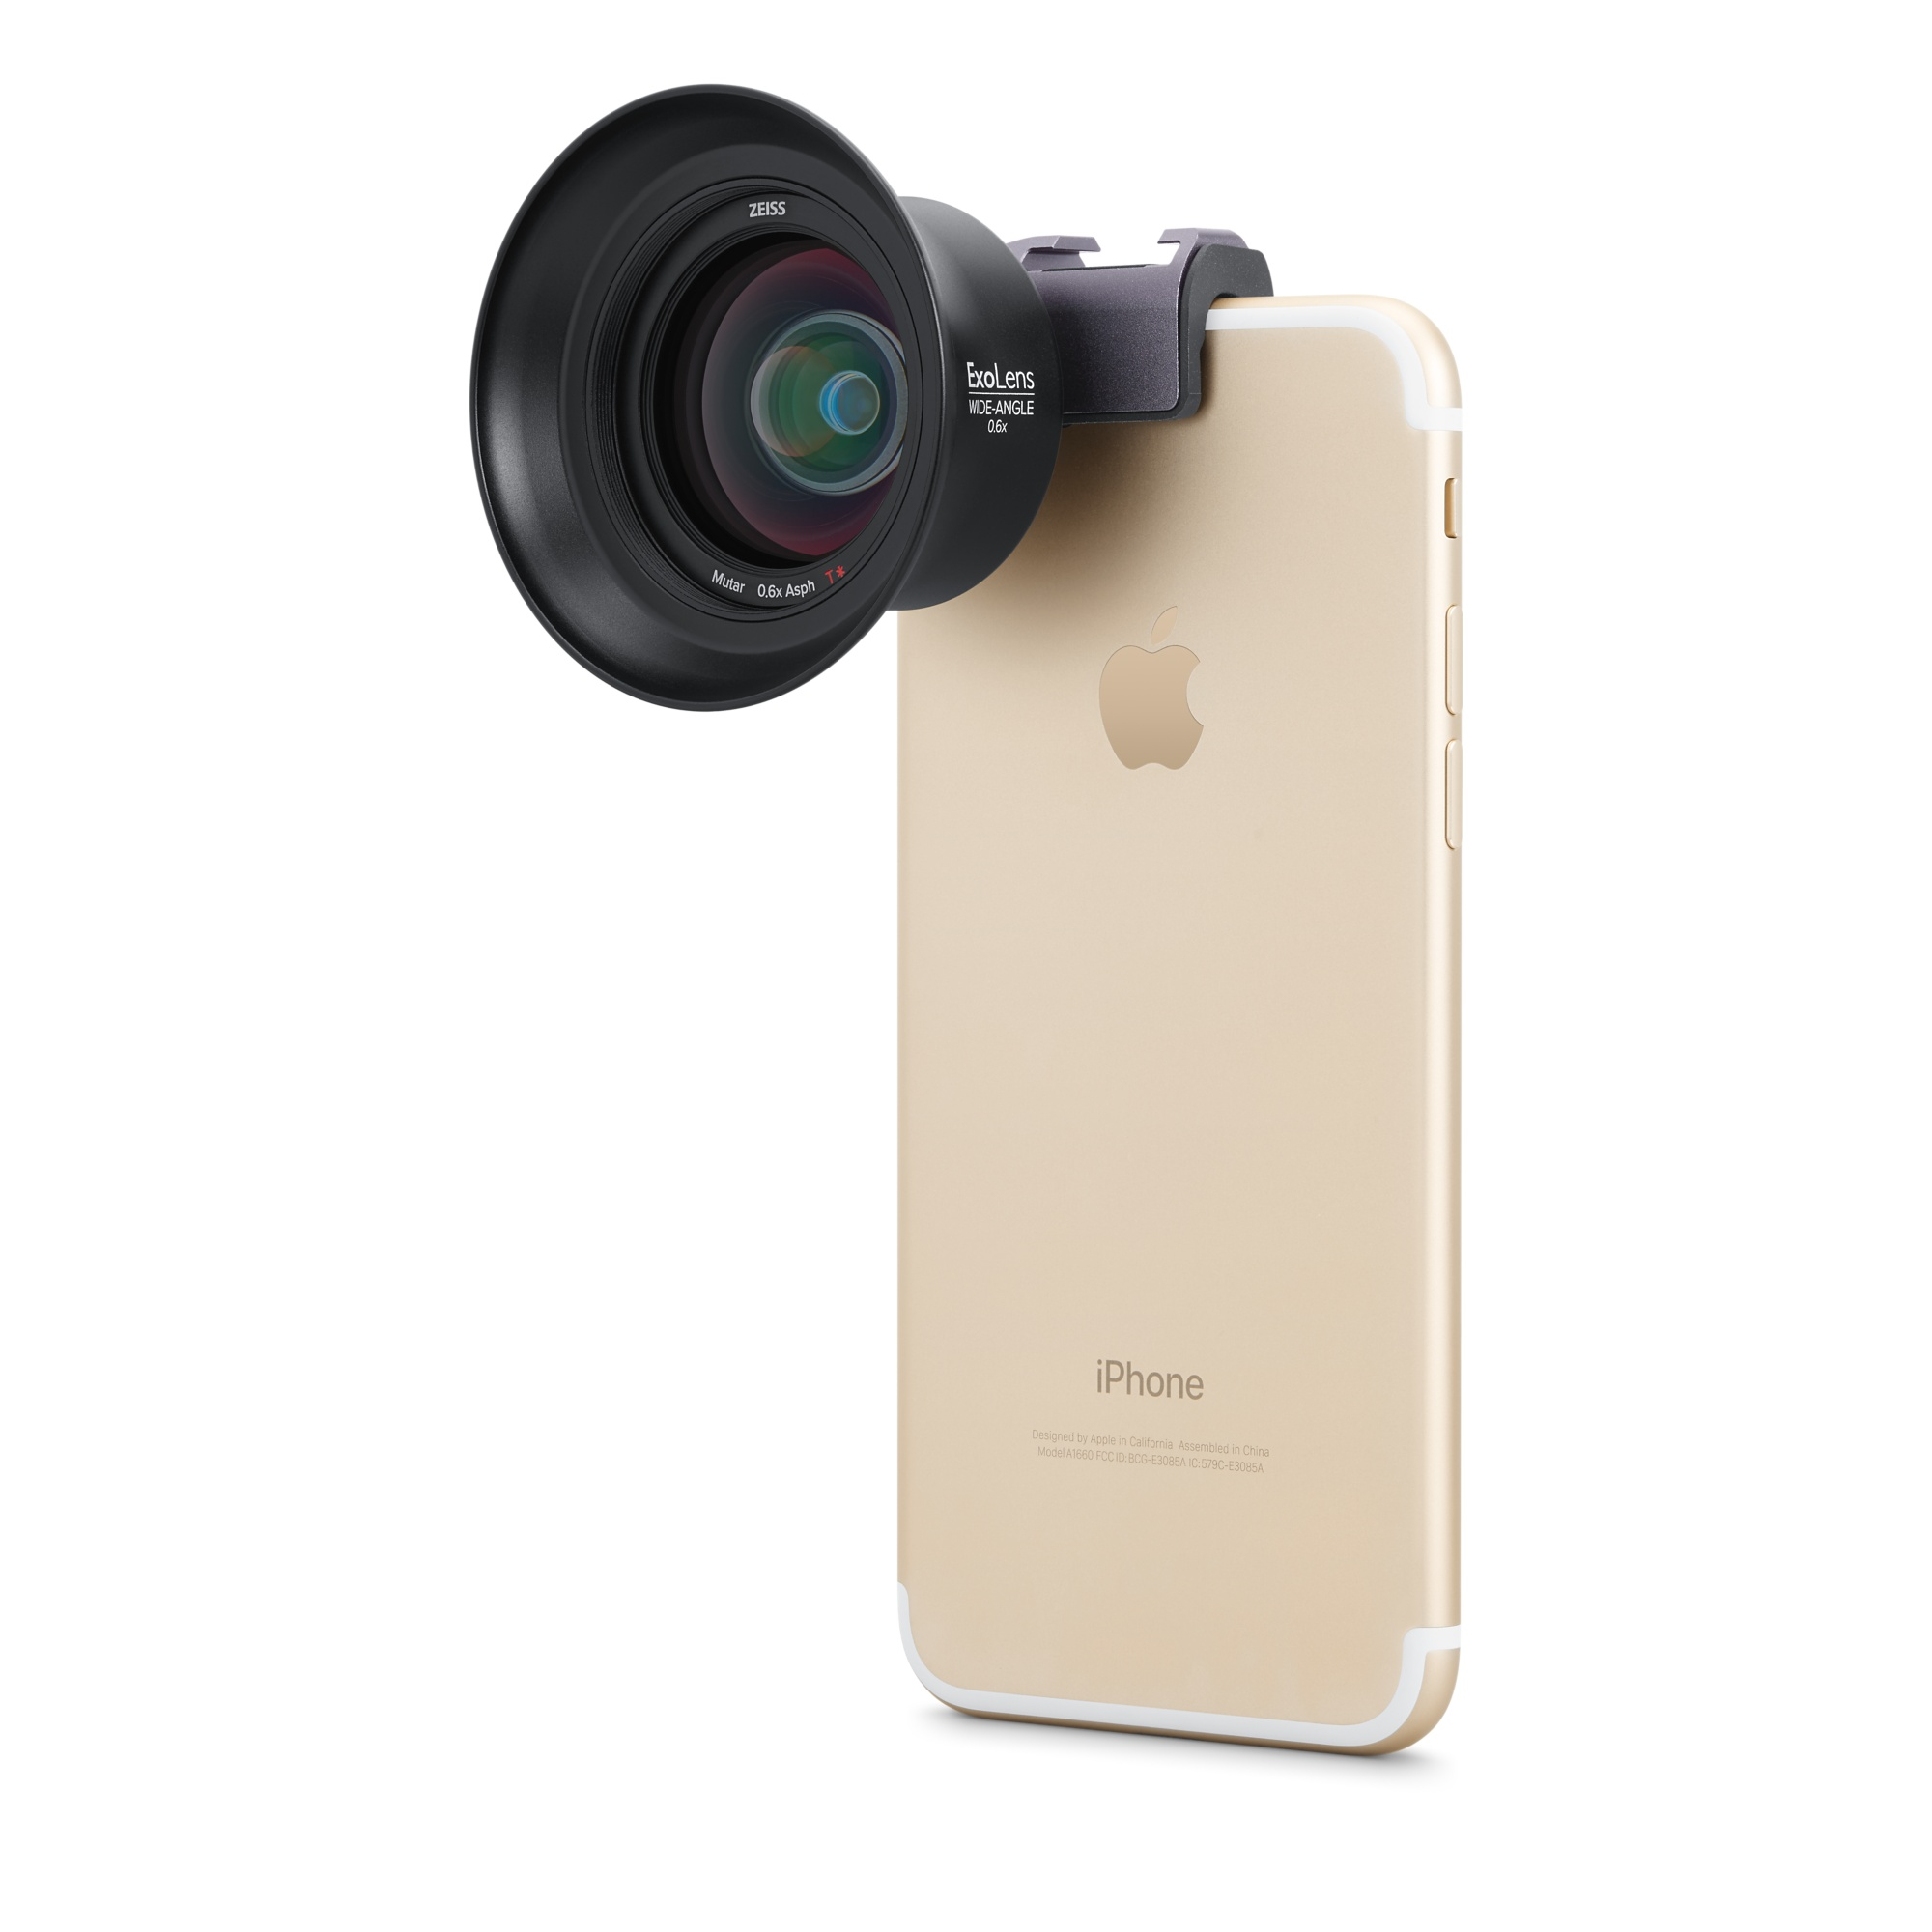 Apple Expands iPhone 7 and 7 Plus Photography Accessories In